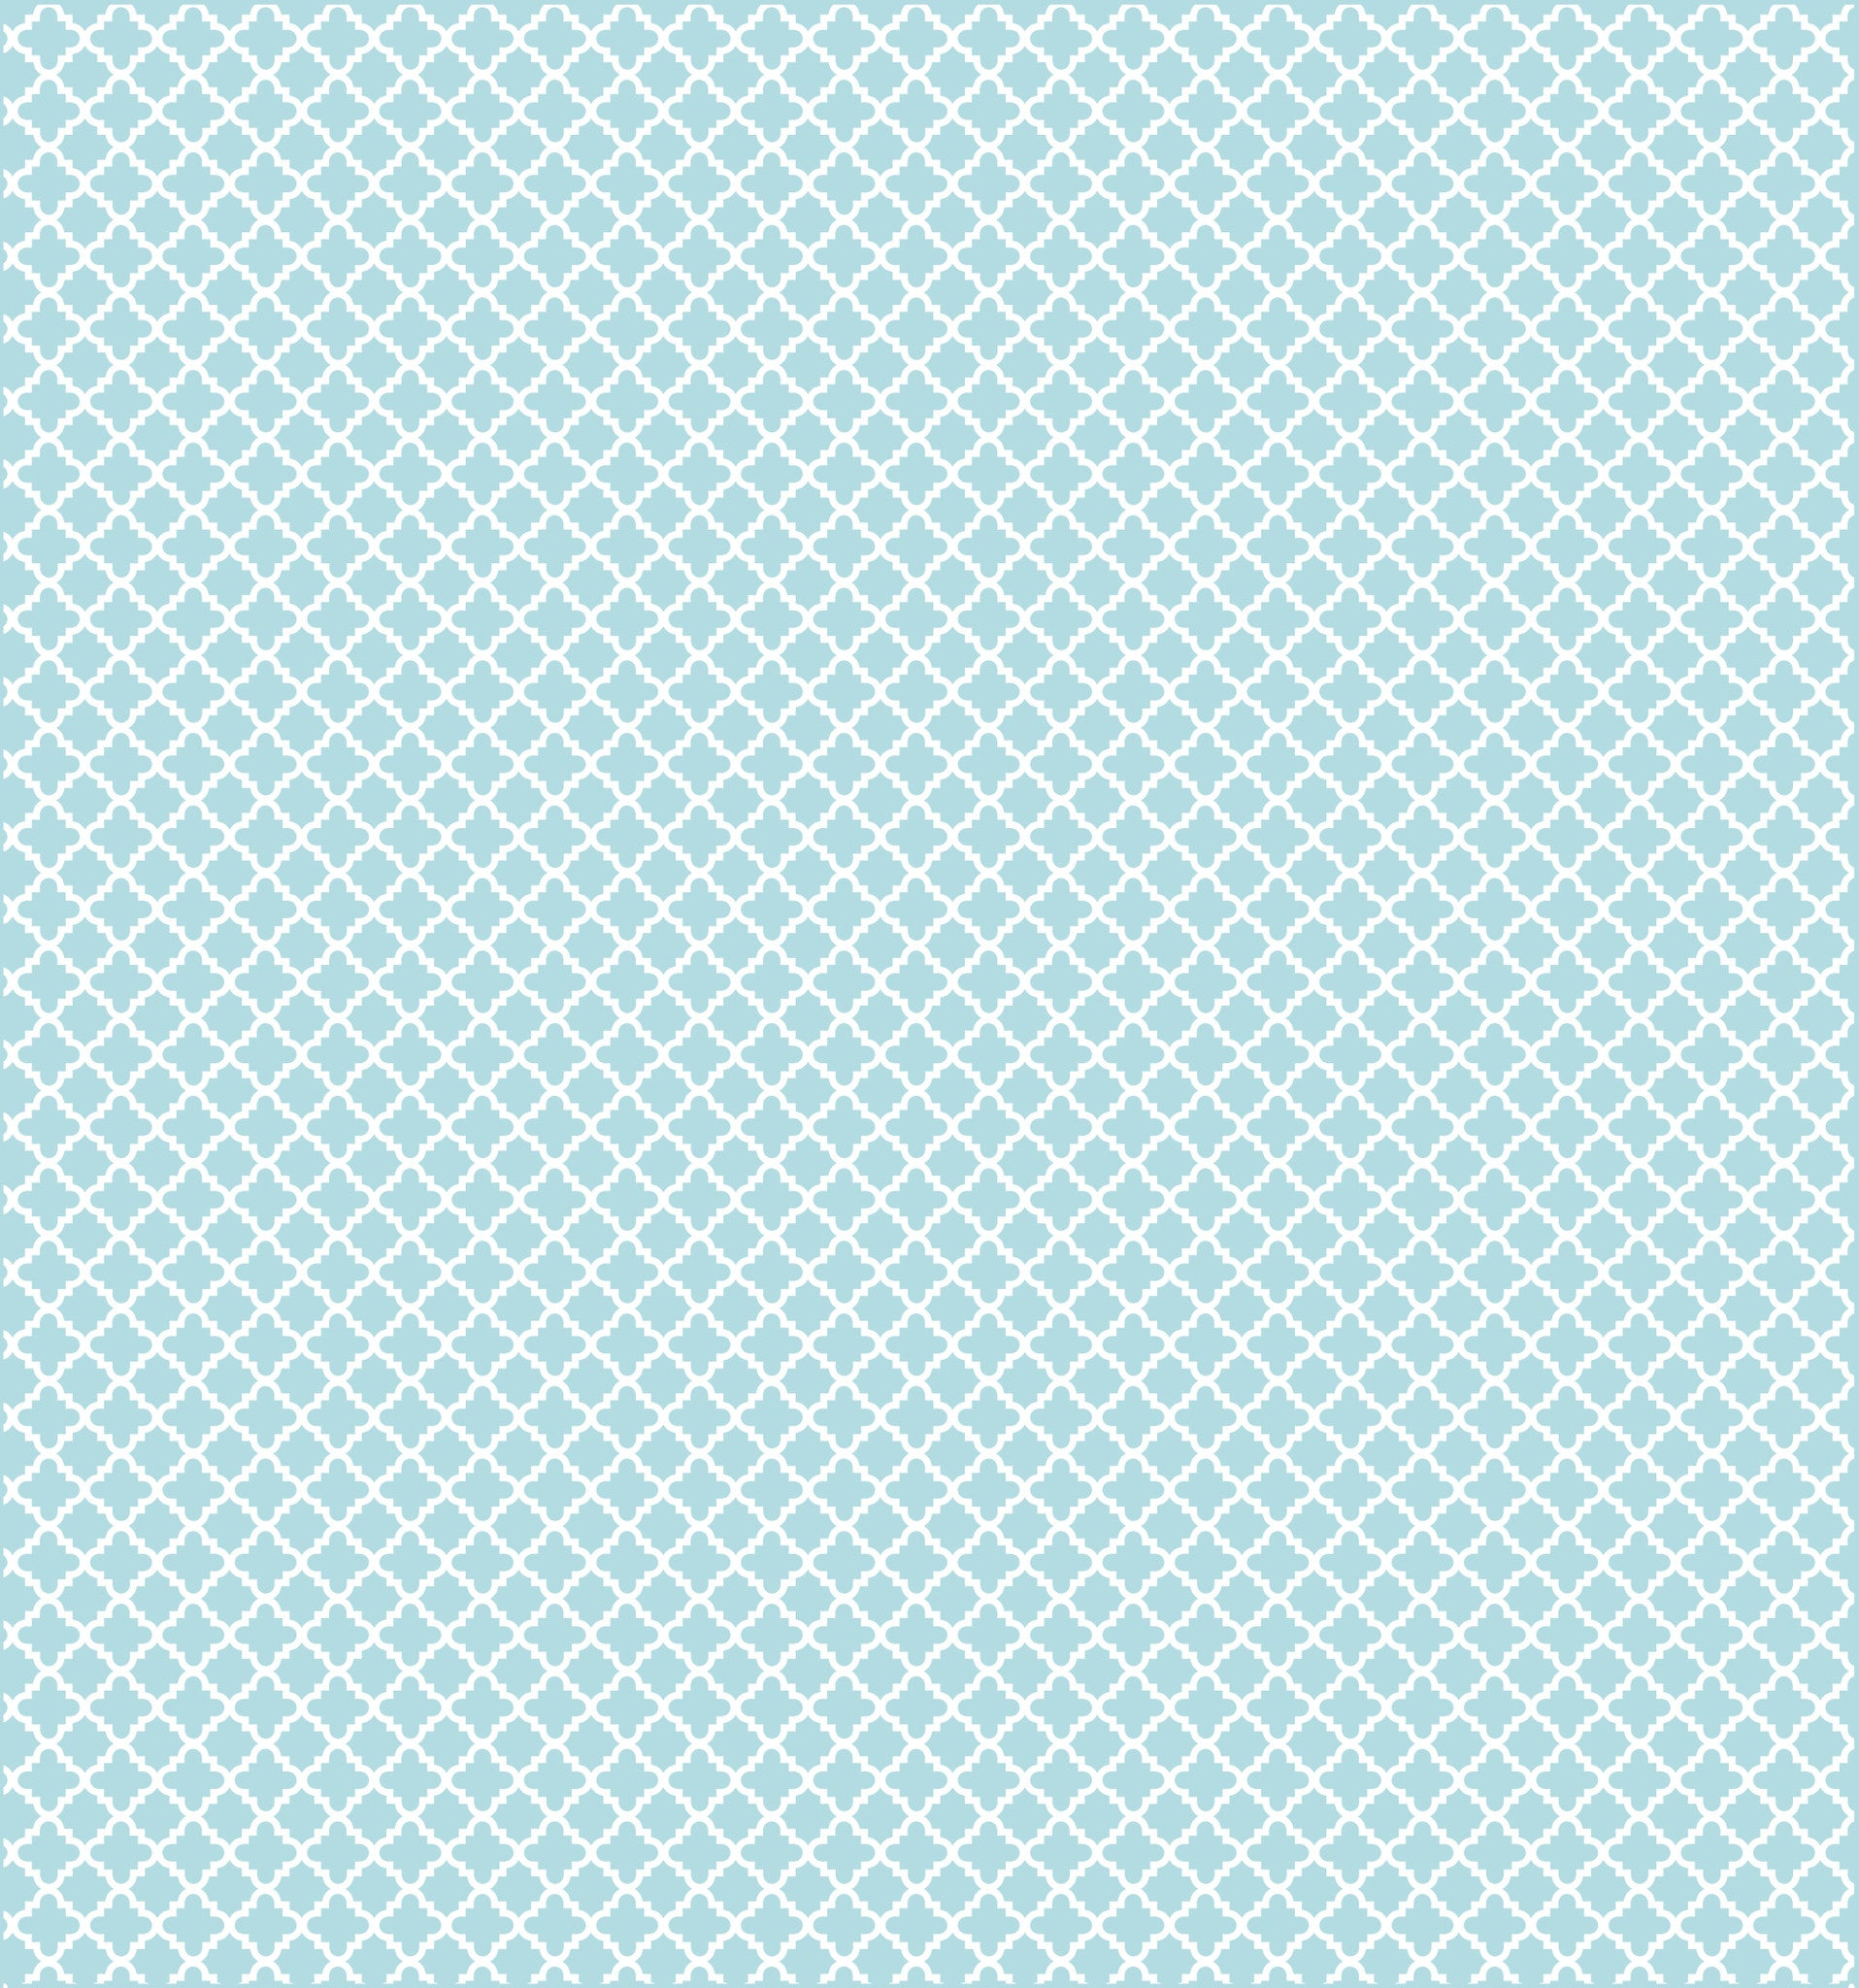 Cotton Flannel Print Trellis Aqua